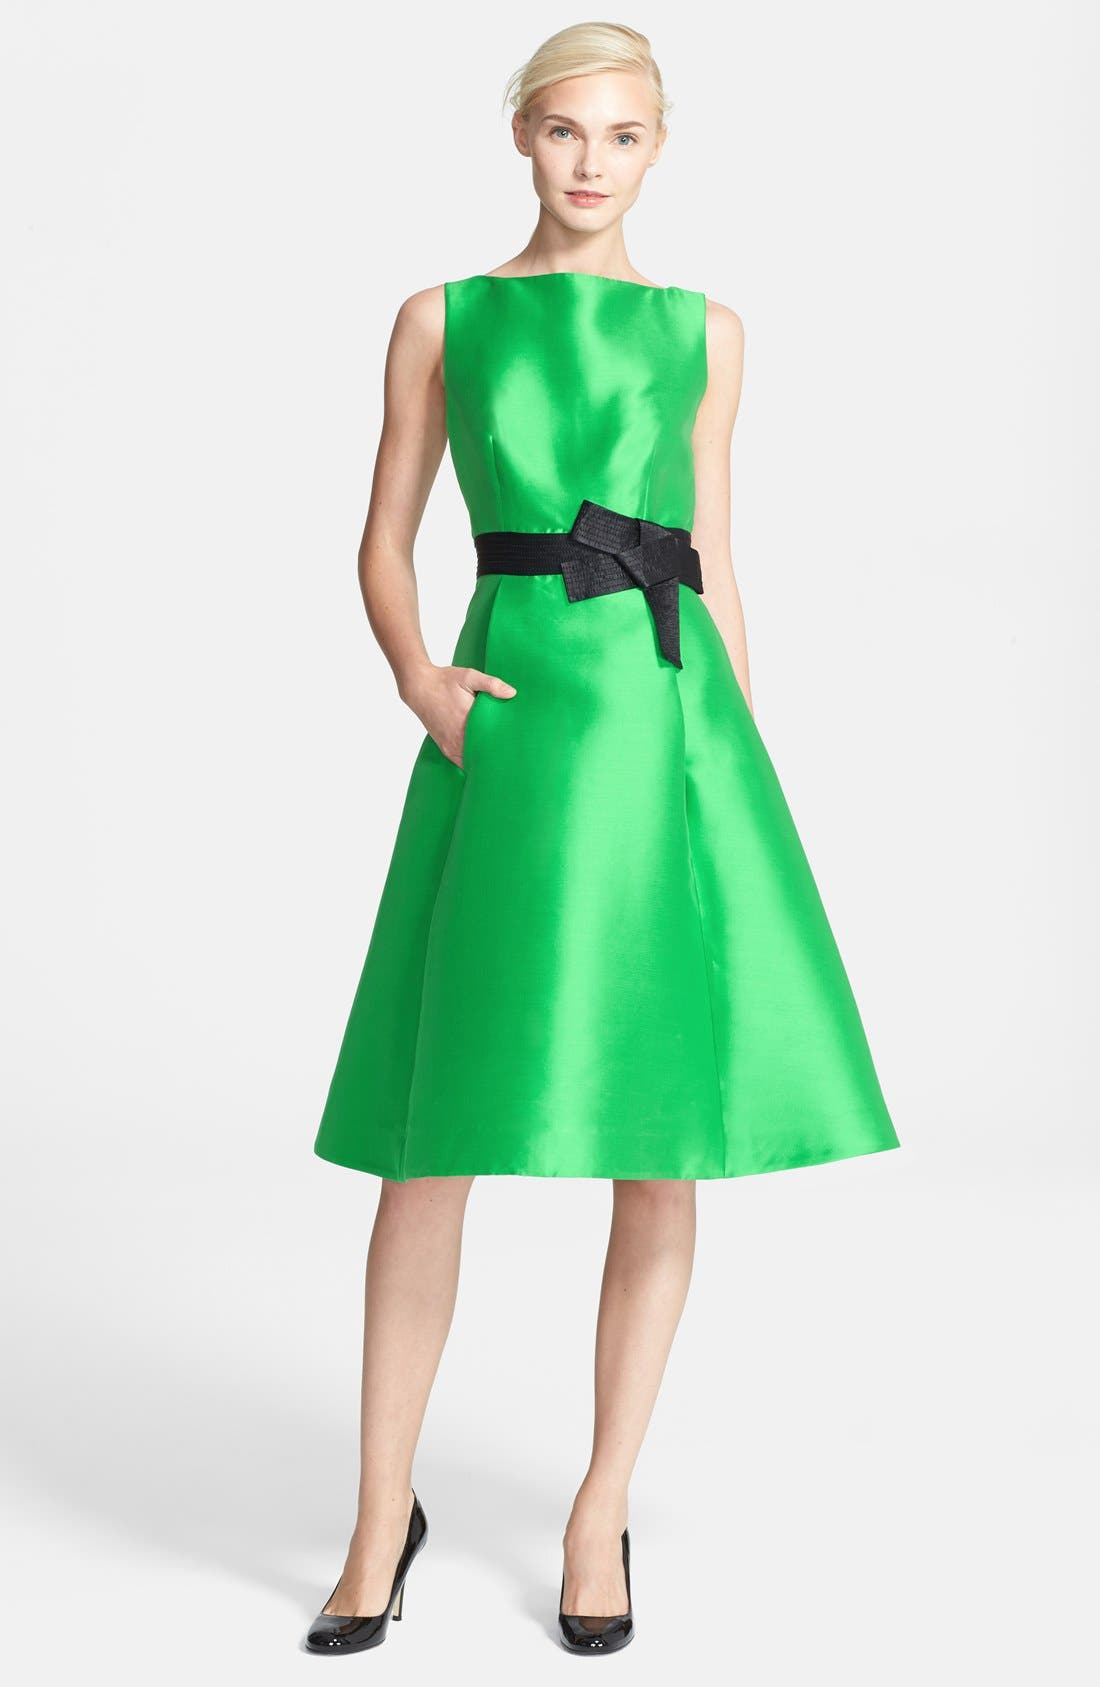 Alternate Image 1 Selected - kate spade new york 'origami' fit & flare dress